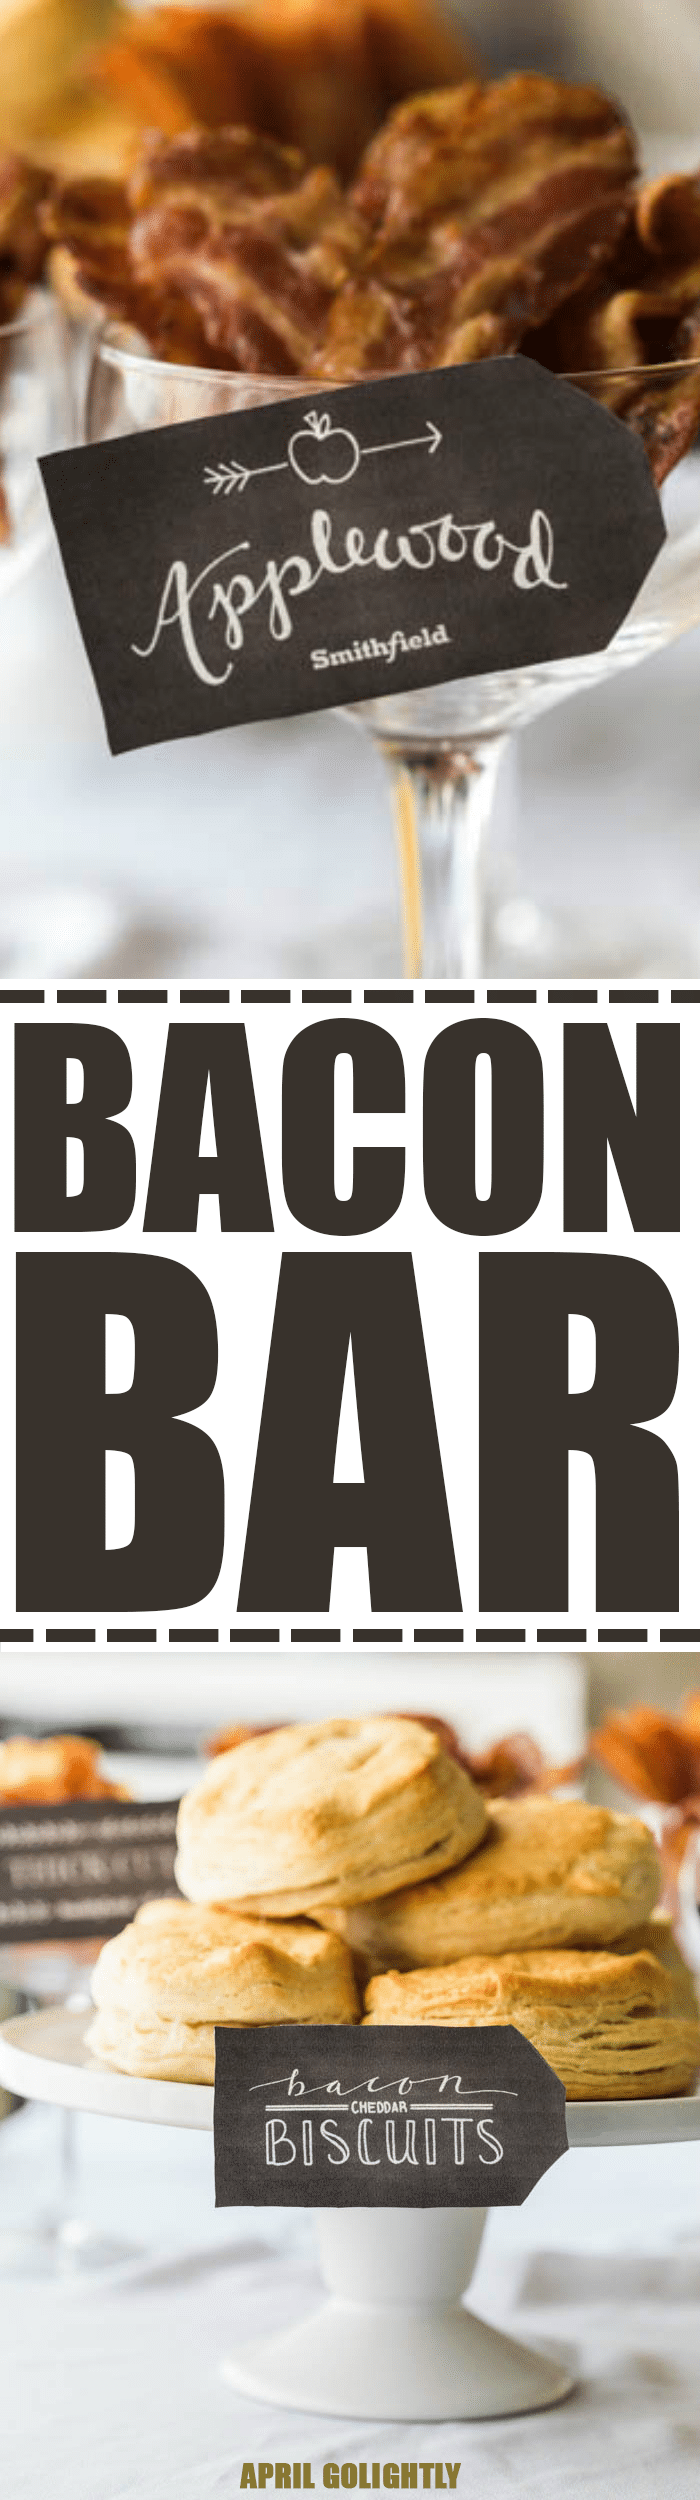 Entertain with a Bacon Bar with Bacon Cheddar Biscuits, Sea Salt Caramel, and different bacons being served with Orange Juice